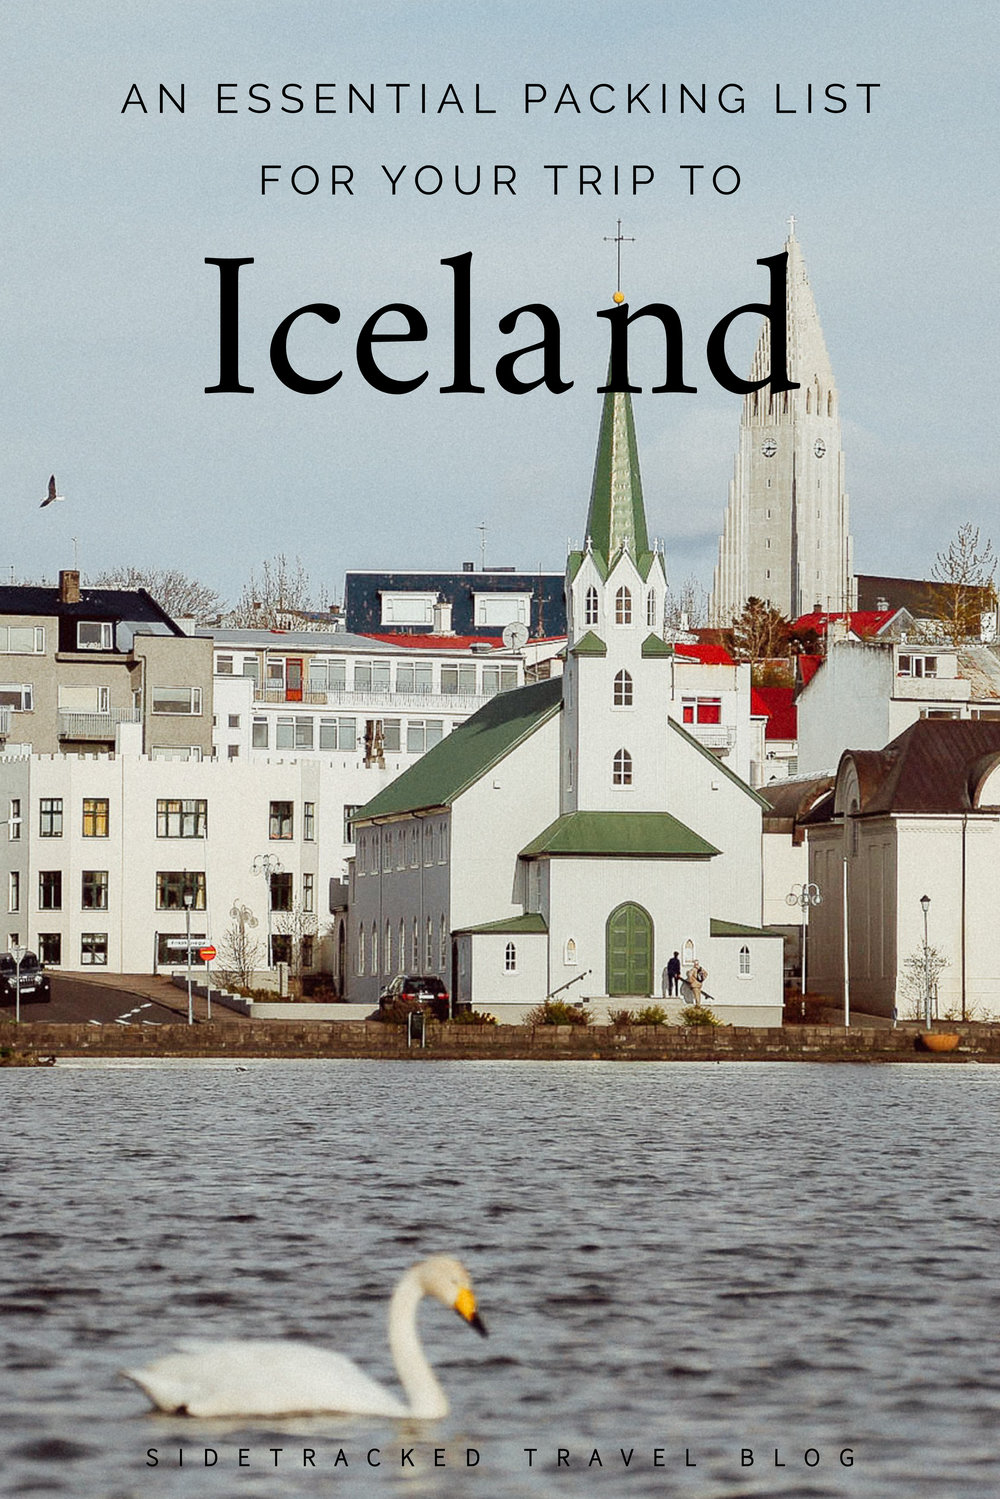 Are you packing for a trip to Iceland? In this article you'll find a helpful list of items ranging from clothing to camera accessories that are sure to make your trip enjoyable!